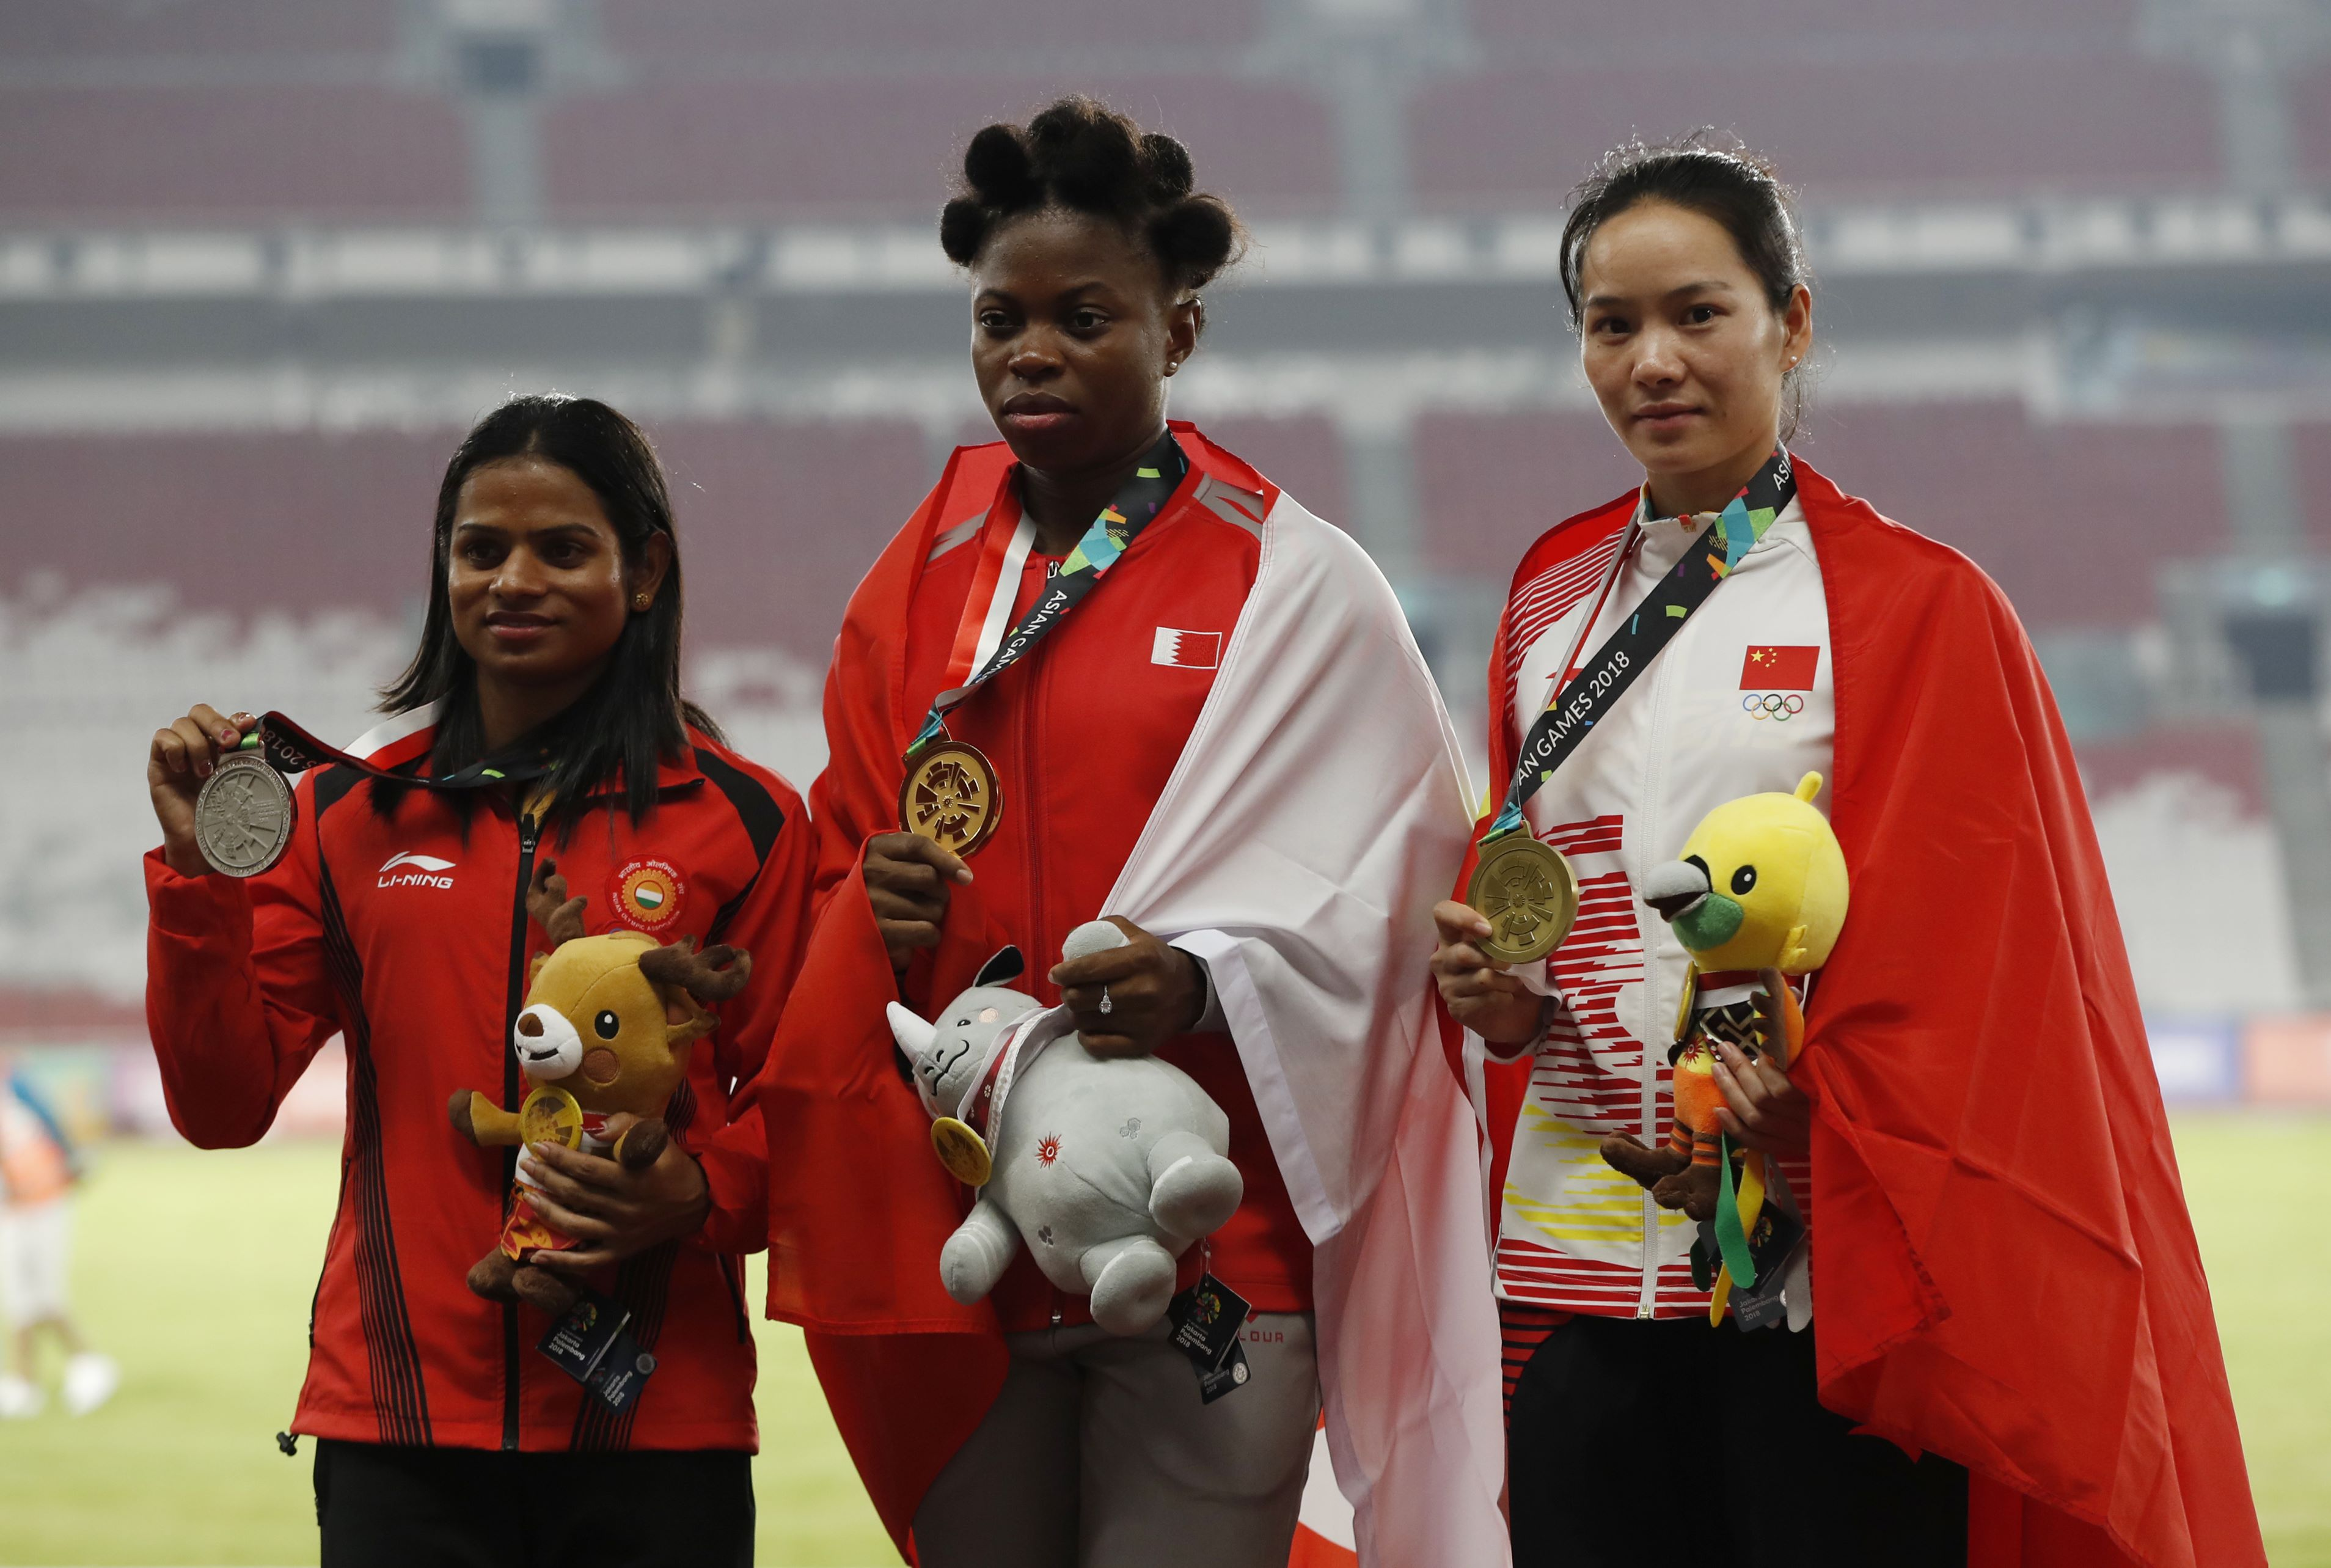 Athletics: Bahrain's Odiong completes women's sprint double in Jakarta